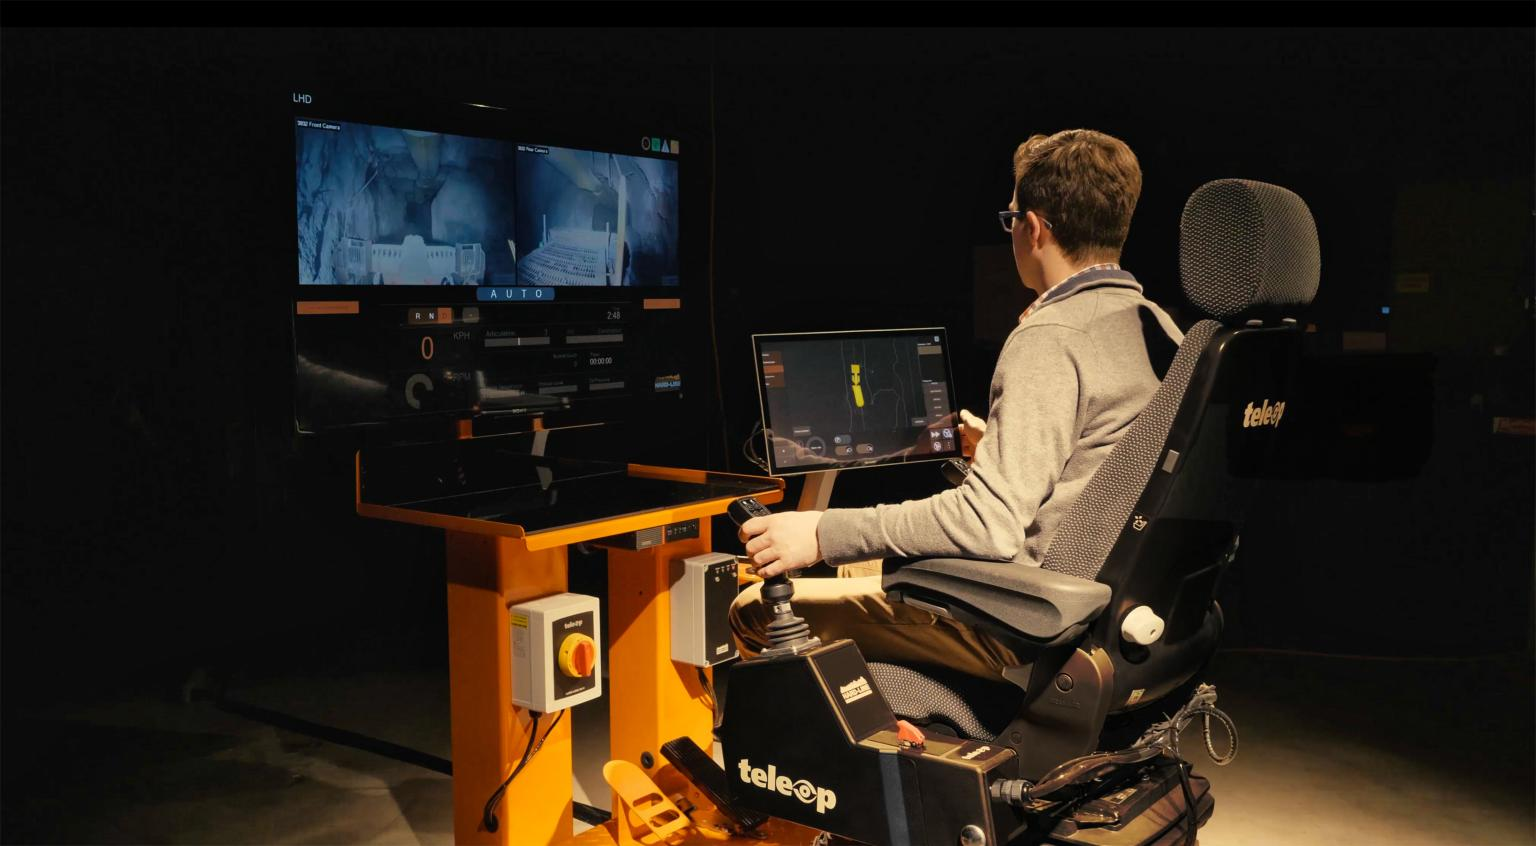 TeleOp Control Station: Control heavy machinery in a safe area on surface or underground, regardless of distance.